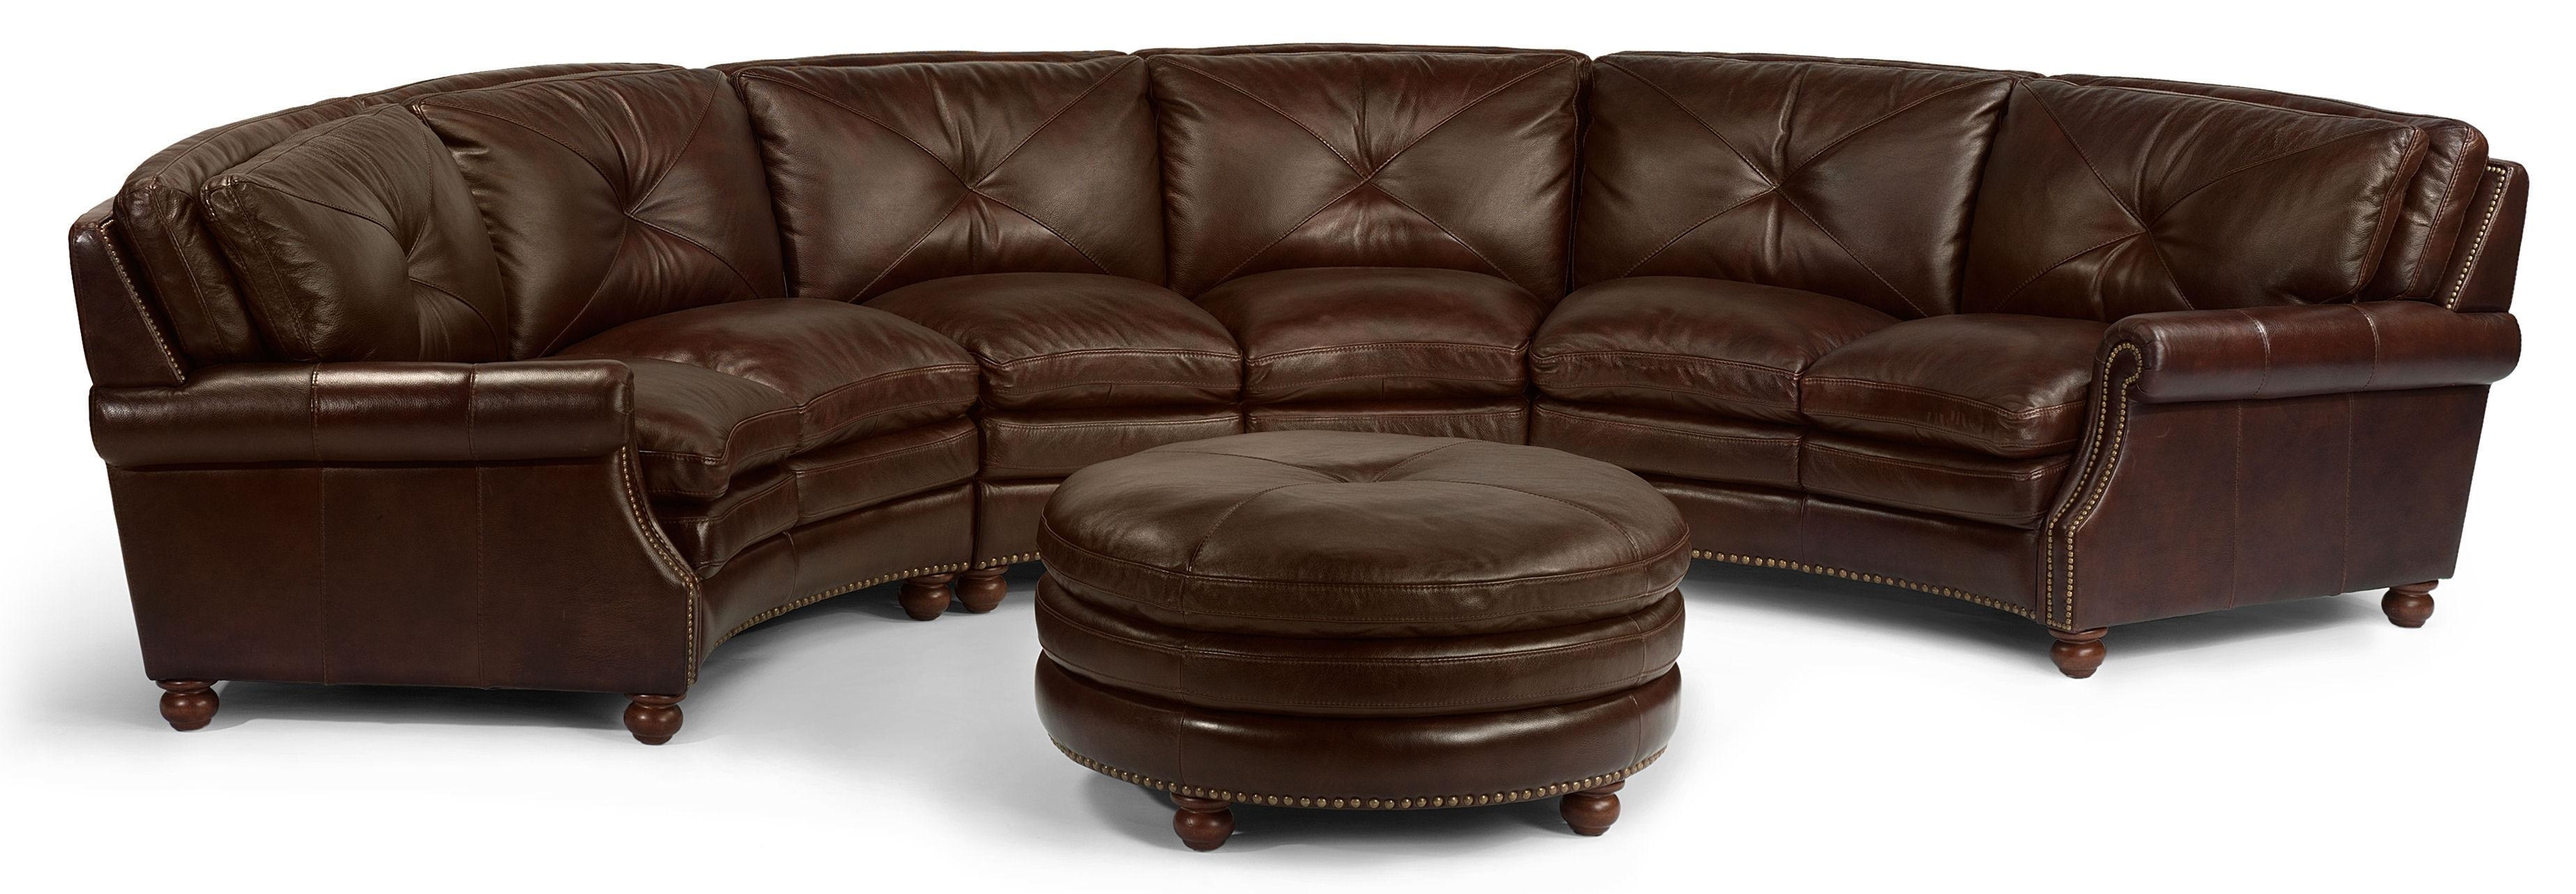 Flexsteel Latitudes Suffolk Round Sectional Sofa With Nailhead Intended For Round Sectional Sofa (View 13 of 20)